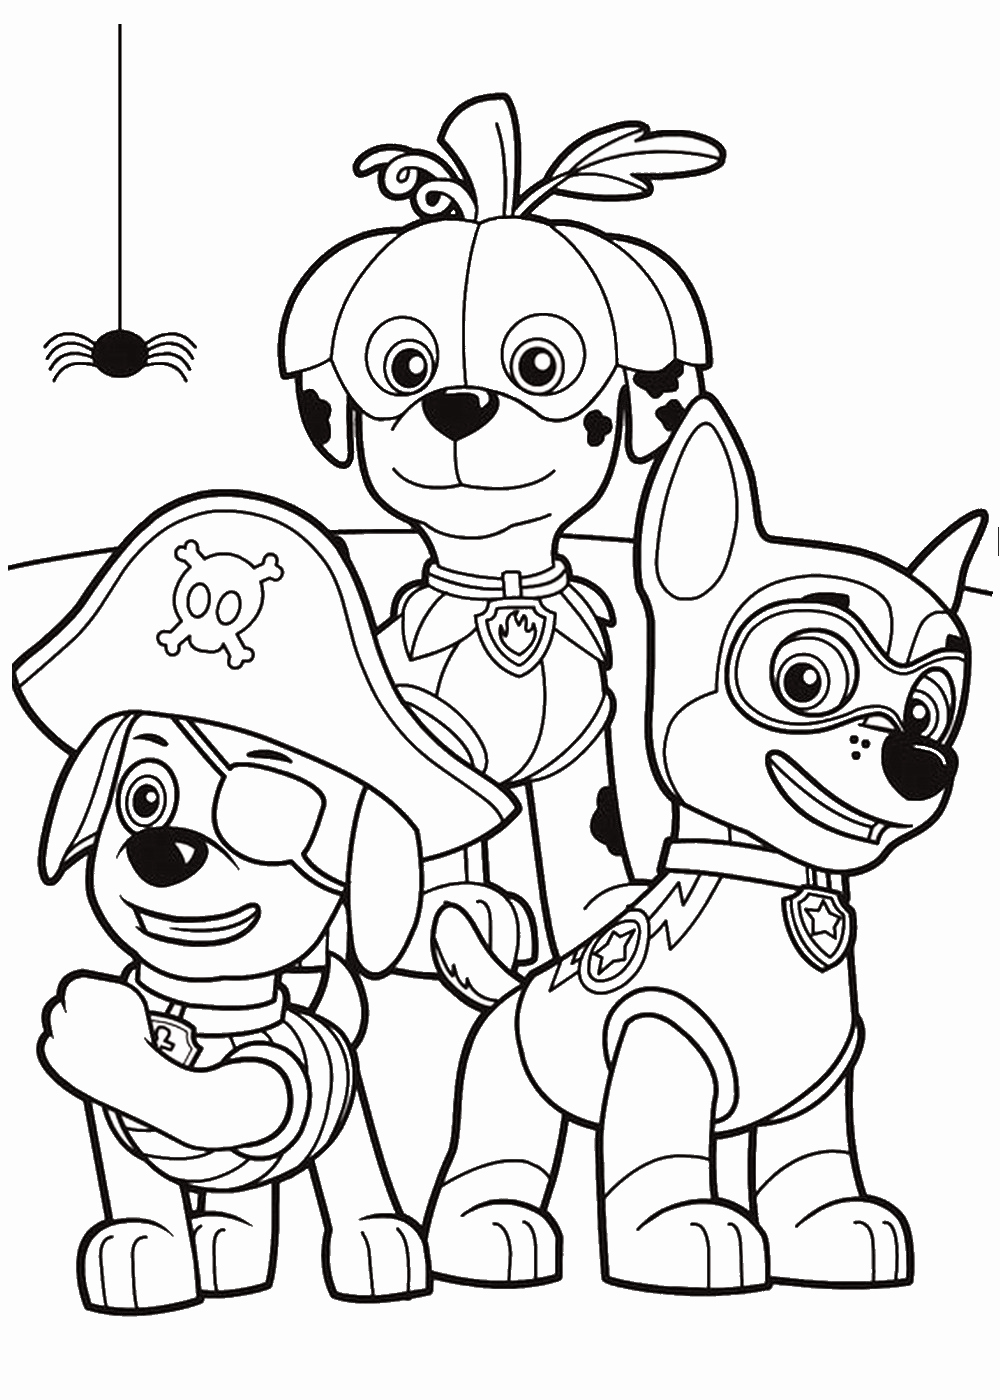 nickelodeon coloring pages online Collection-Nick Jr Games Bubble Guppies Awesome Nick Jr Coloring Beautiful 20 Awesome Coloring Games Nick Jr 8-s